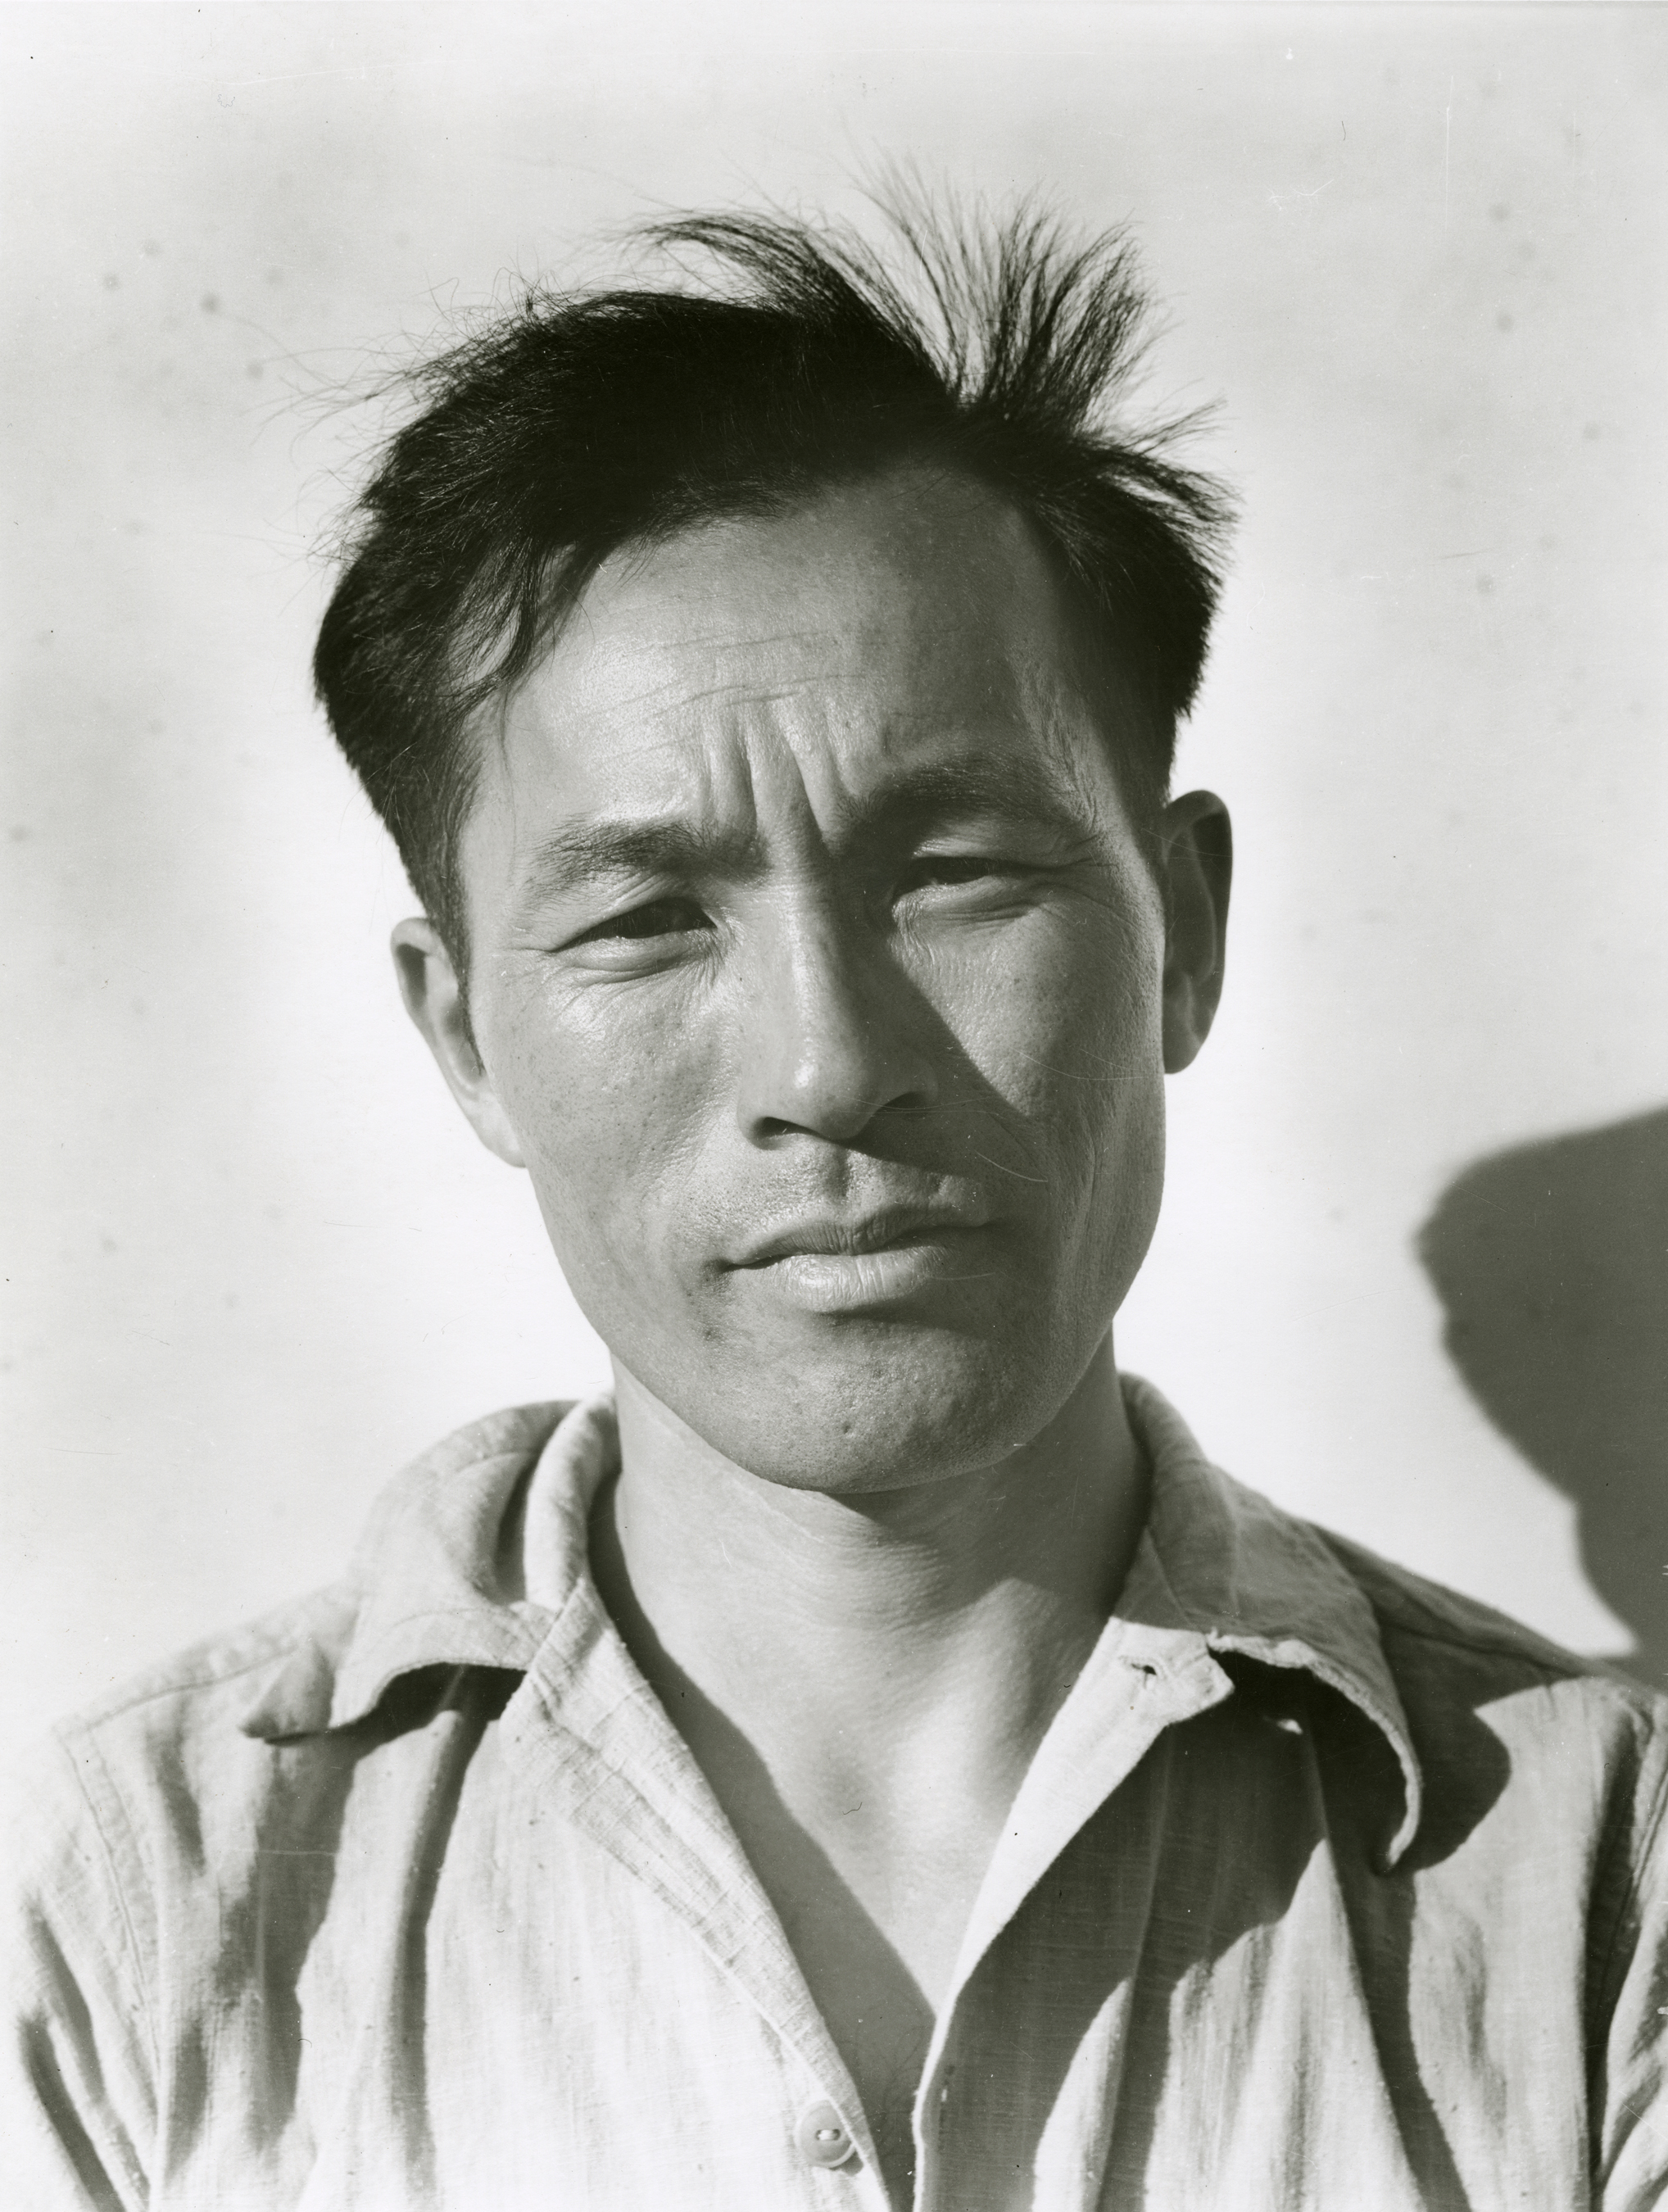 http://museumca.org/sites/default/files/Young%20Man%20at%20Manzanar%20Relocation%20Center%2C%20July%203%2C%201942.jpg